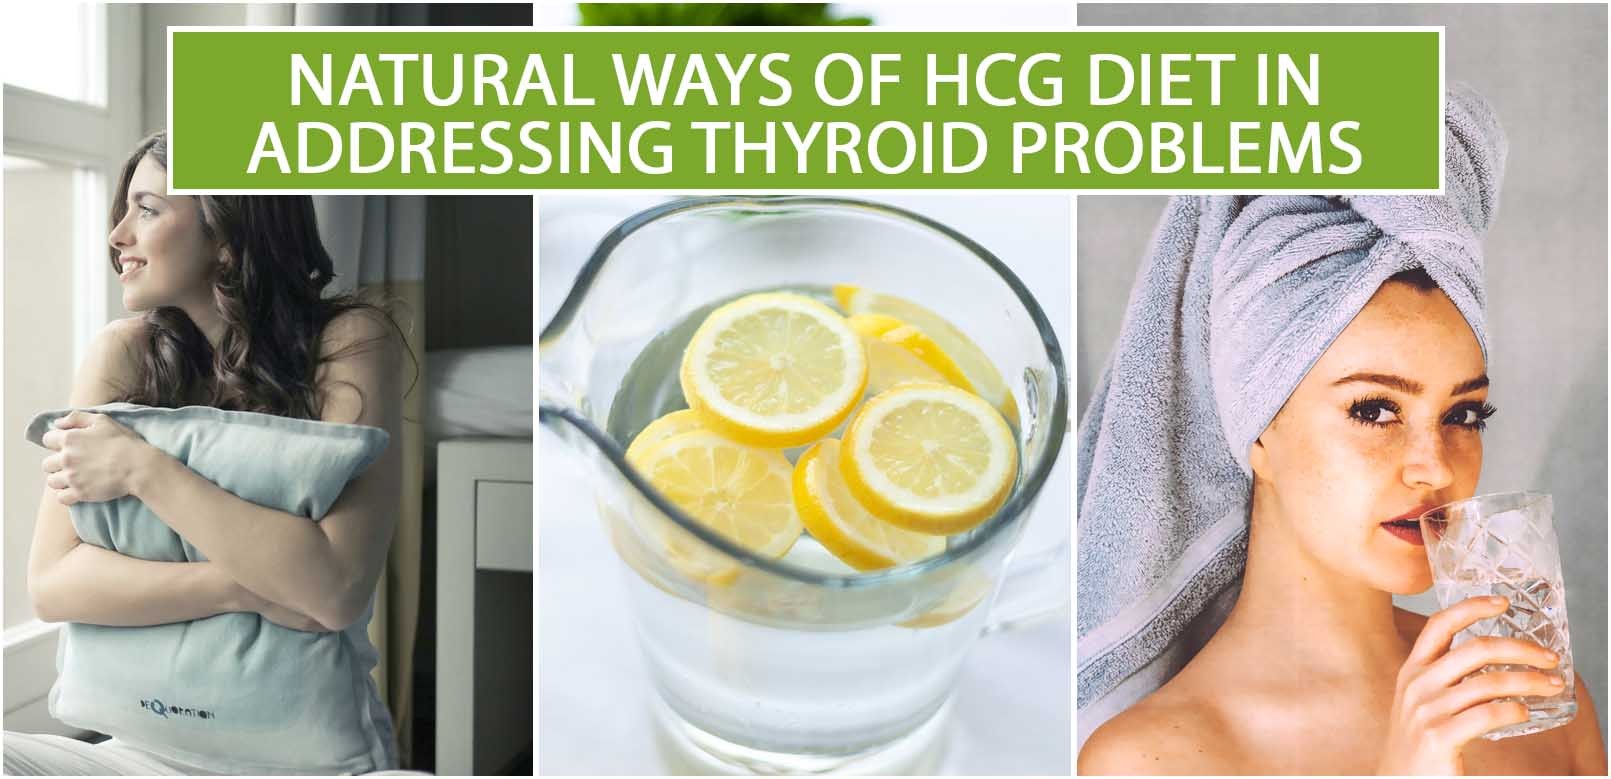 Thyroid problems are a term for a medical condition when your thyroid is not making the right amount of hormones. The function of the thyroid is to make hormones for normal body function.